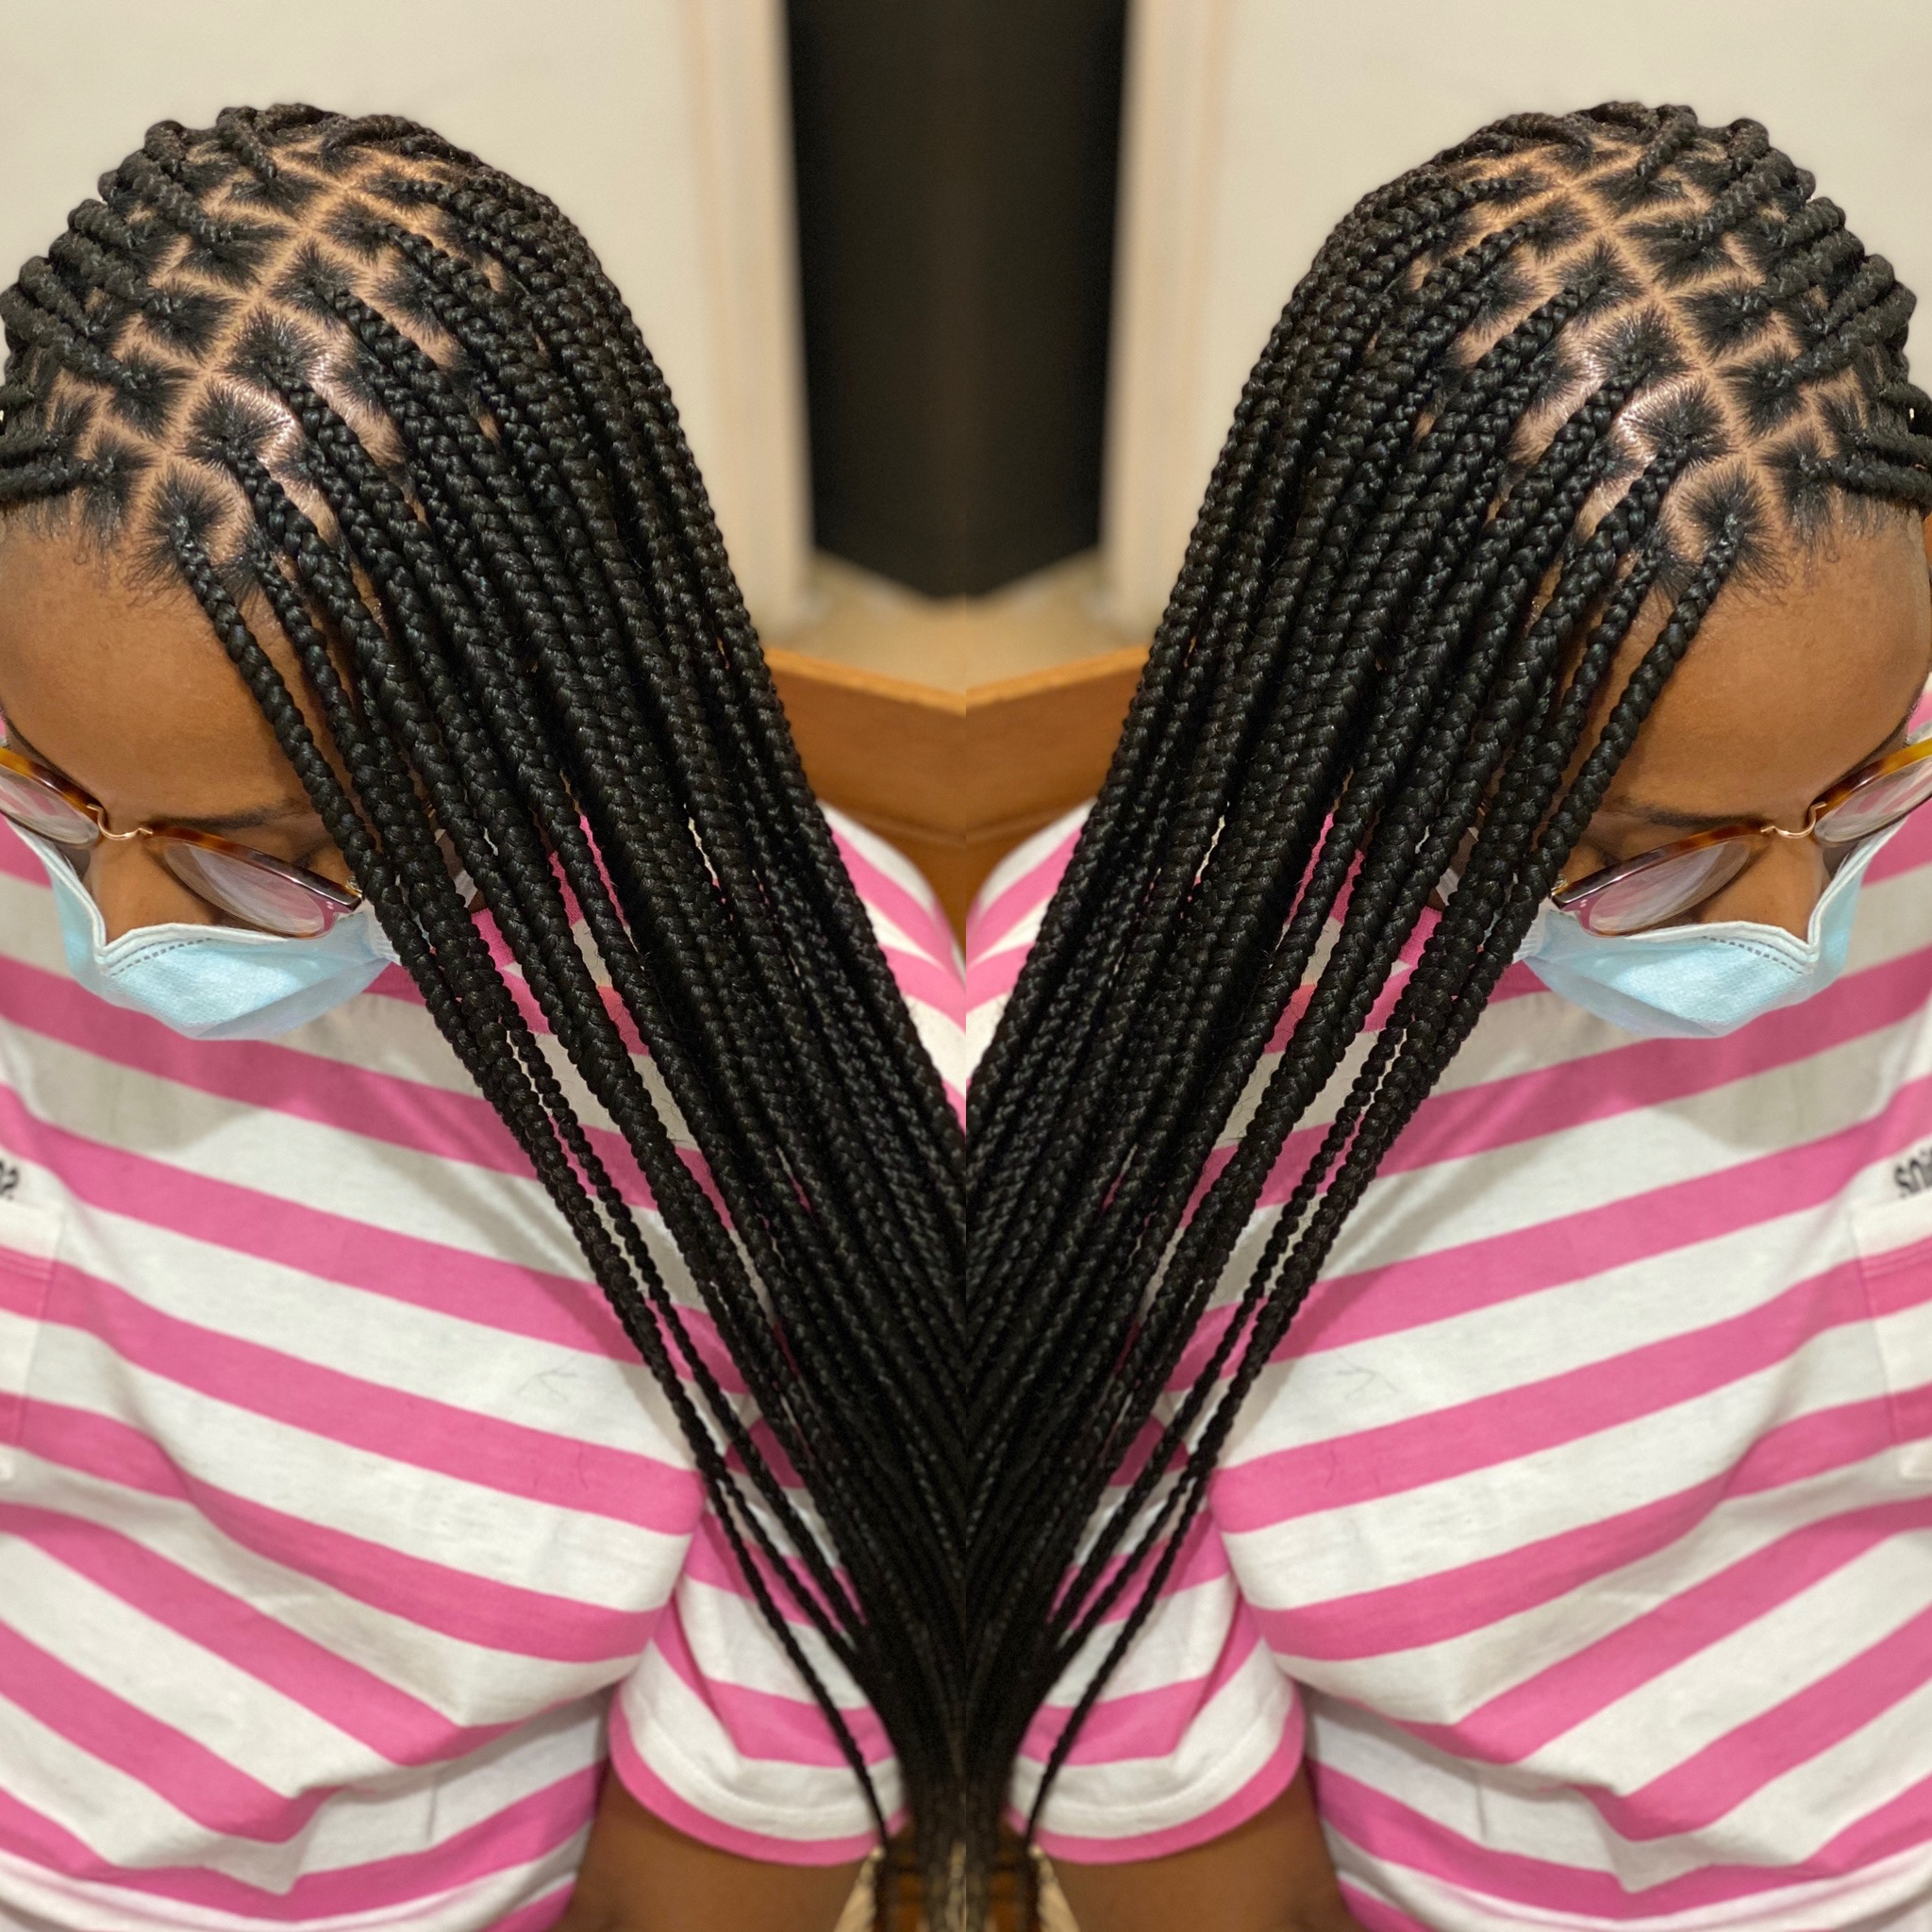 salon de coiffure afro tresse tresses box braids crochet braids vanilles tissages paris 75 77 78 91 92 93 94 95 RZMLHZUU